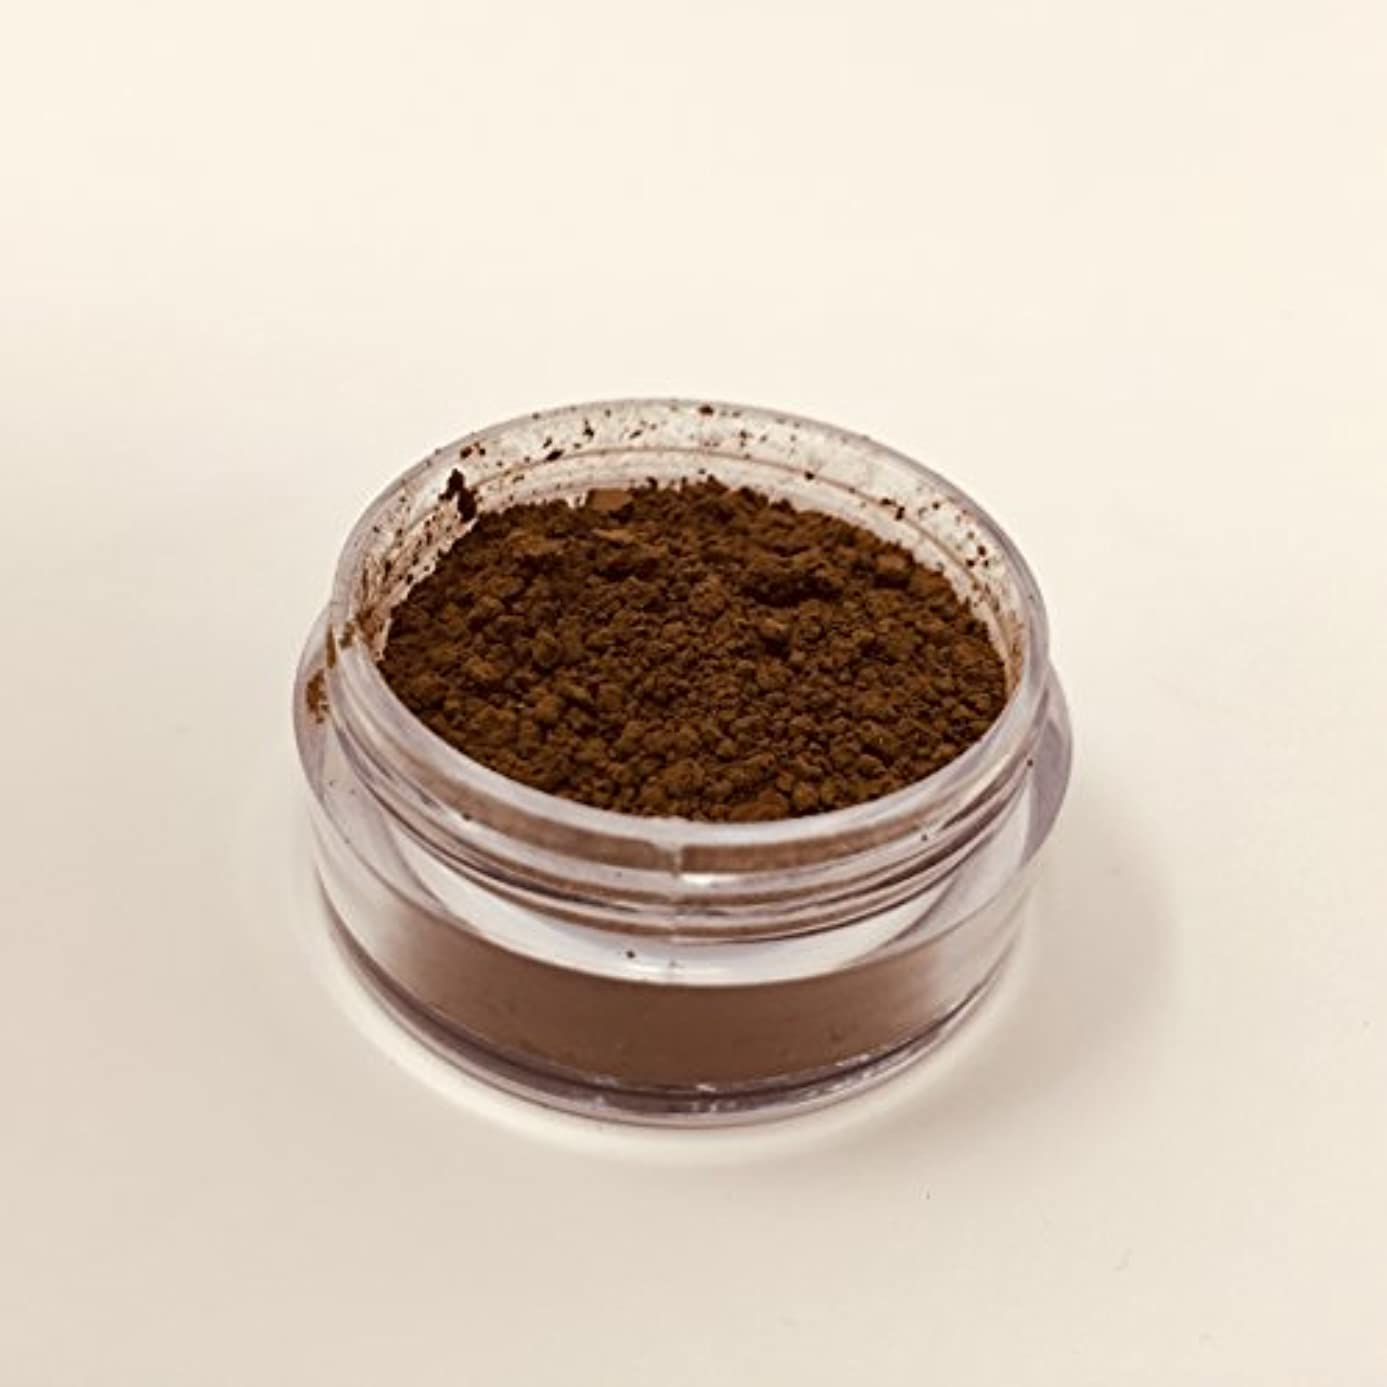 The Magic Chameleon Crafts Company. Thermochromic Temperature Activated Pigment - Multiple Colors and Different Temperature Changes Available. Changes at 88?F (31 ?C) (2g, Coffee to Green)